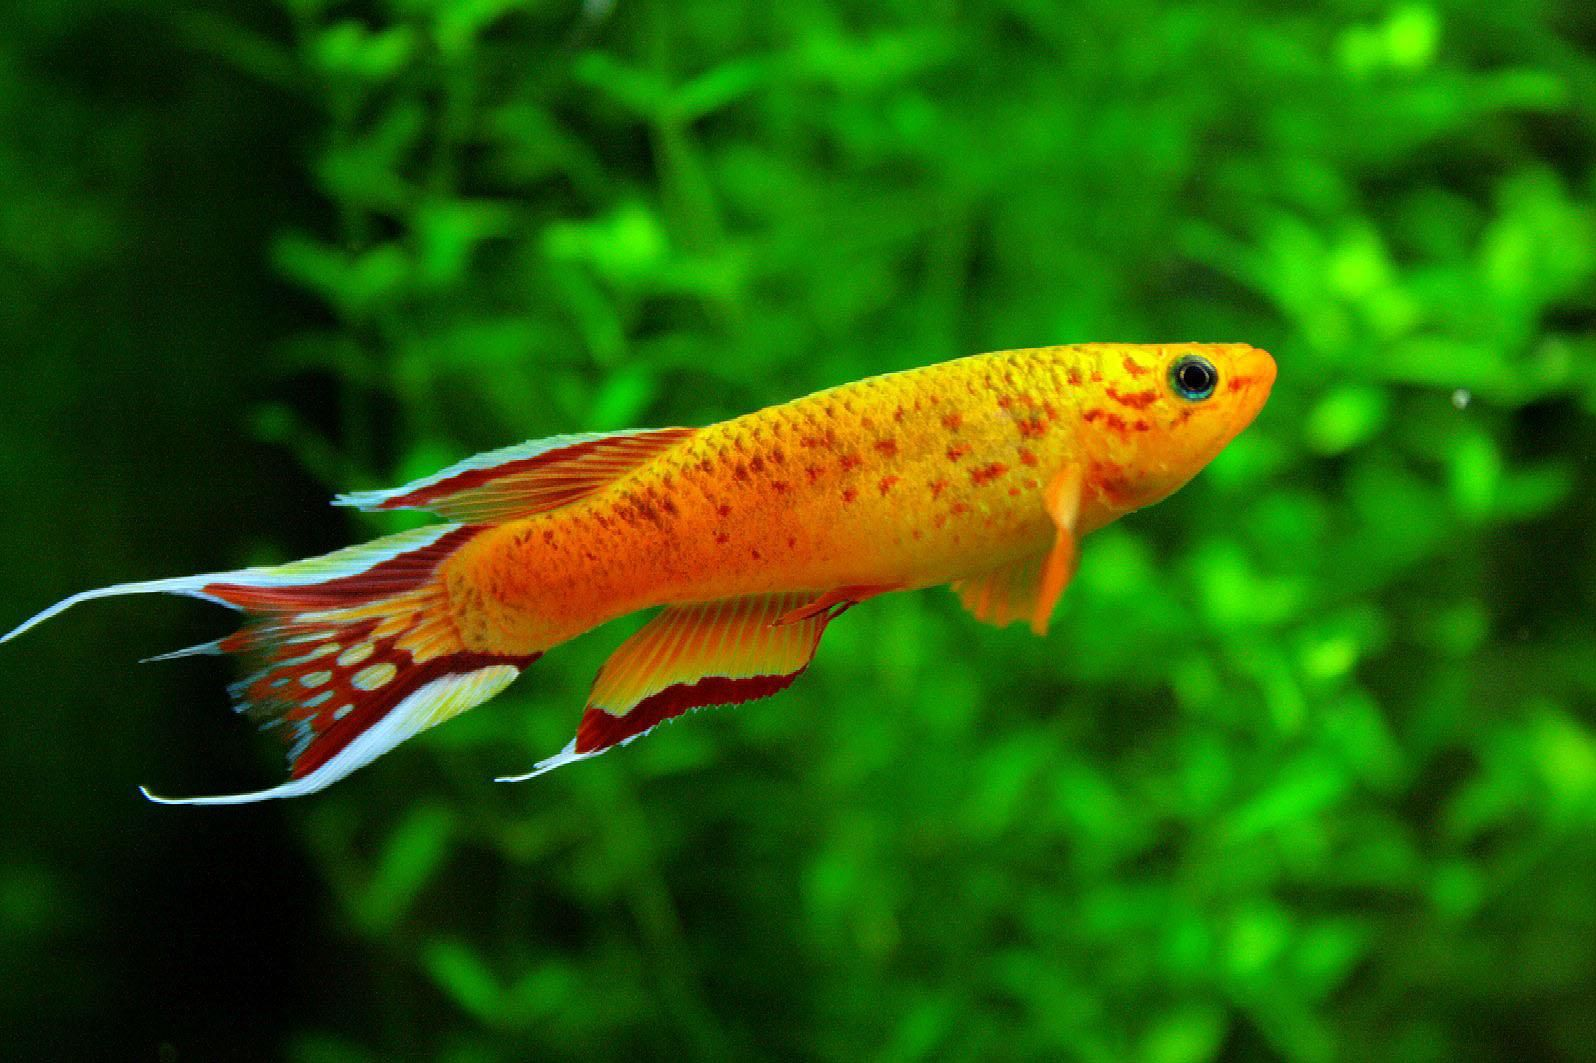 Freshwater aquarium odd fish - Freshwater Fish Tropical Discussion Tropical Fish Forums Wallpaper